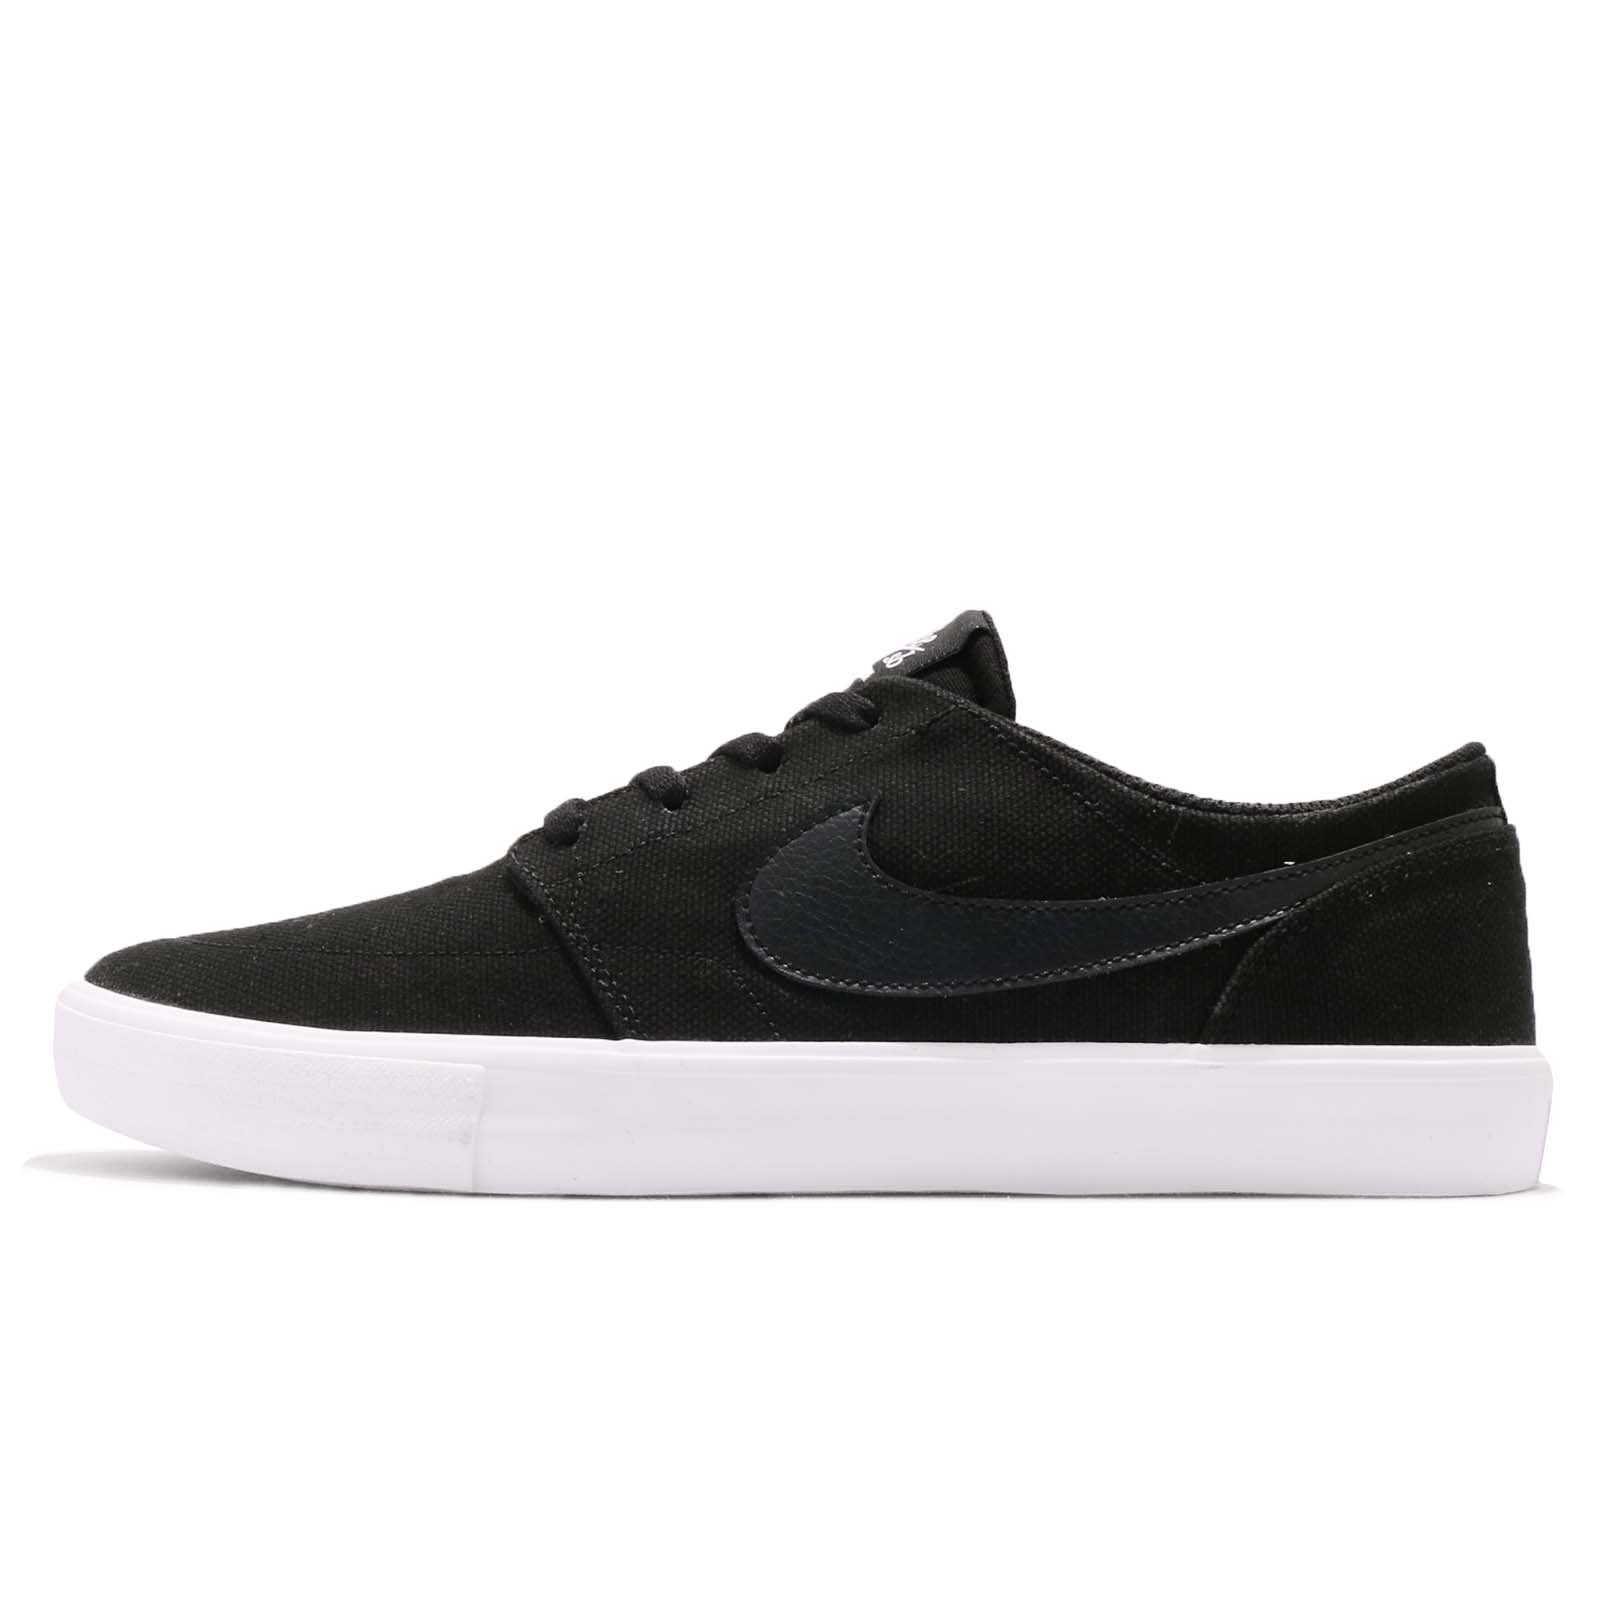 f0e5f57d843646 Galleon - NIKE Men's SB Portmore II Solar CNVS, Black/Black-White, 9.5 M US